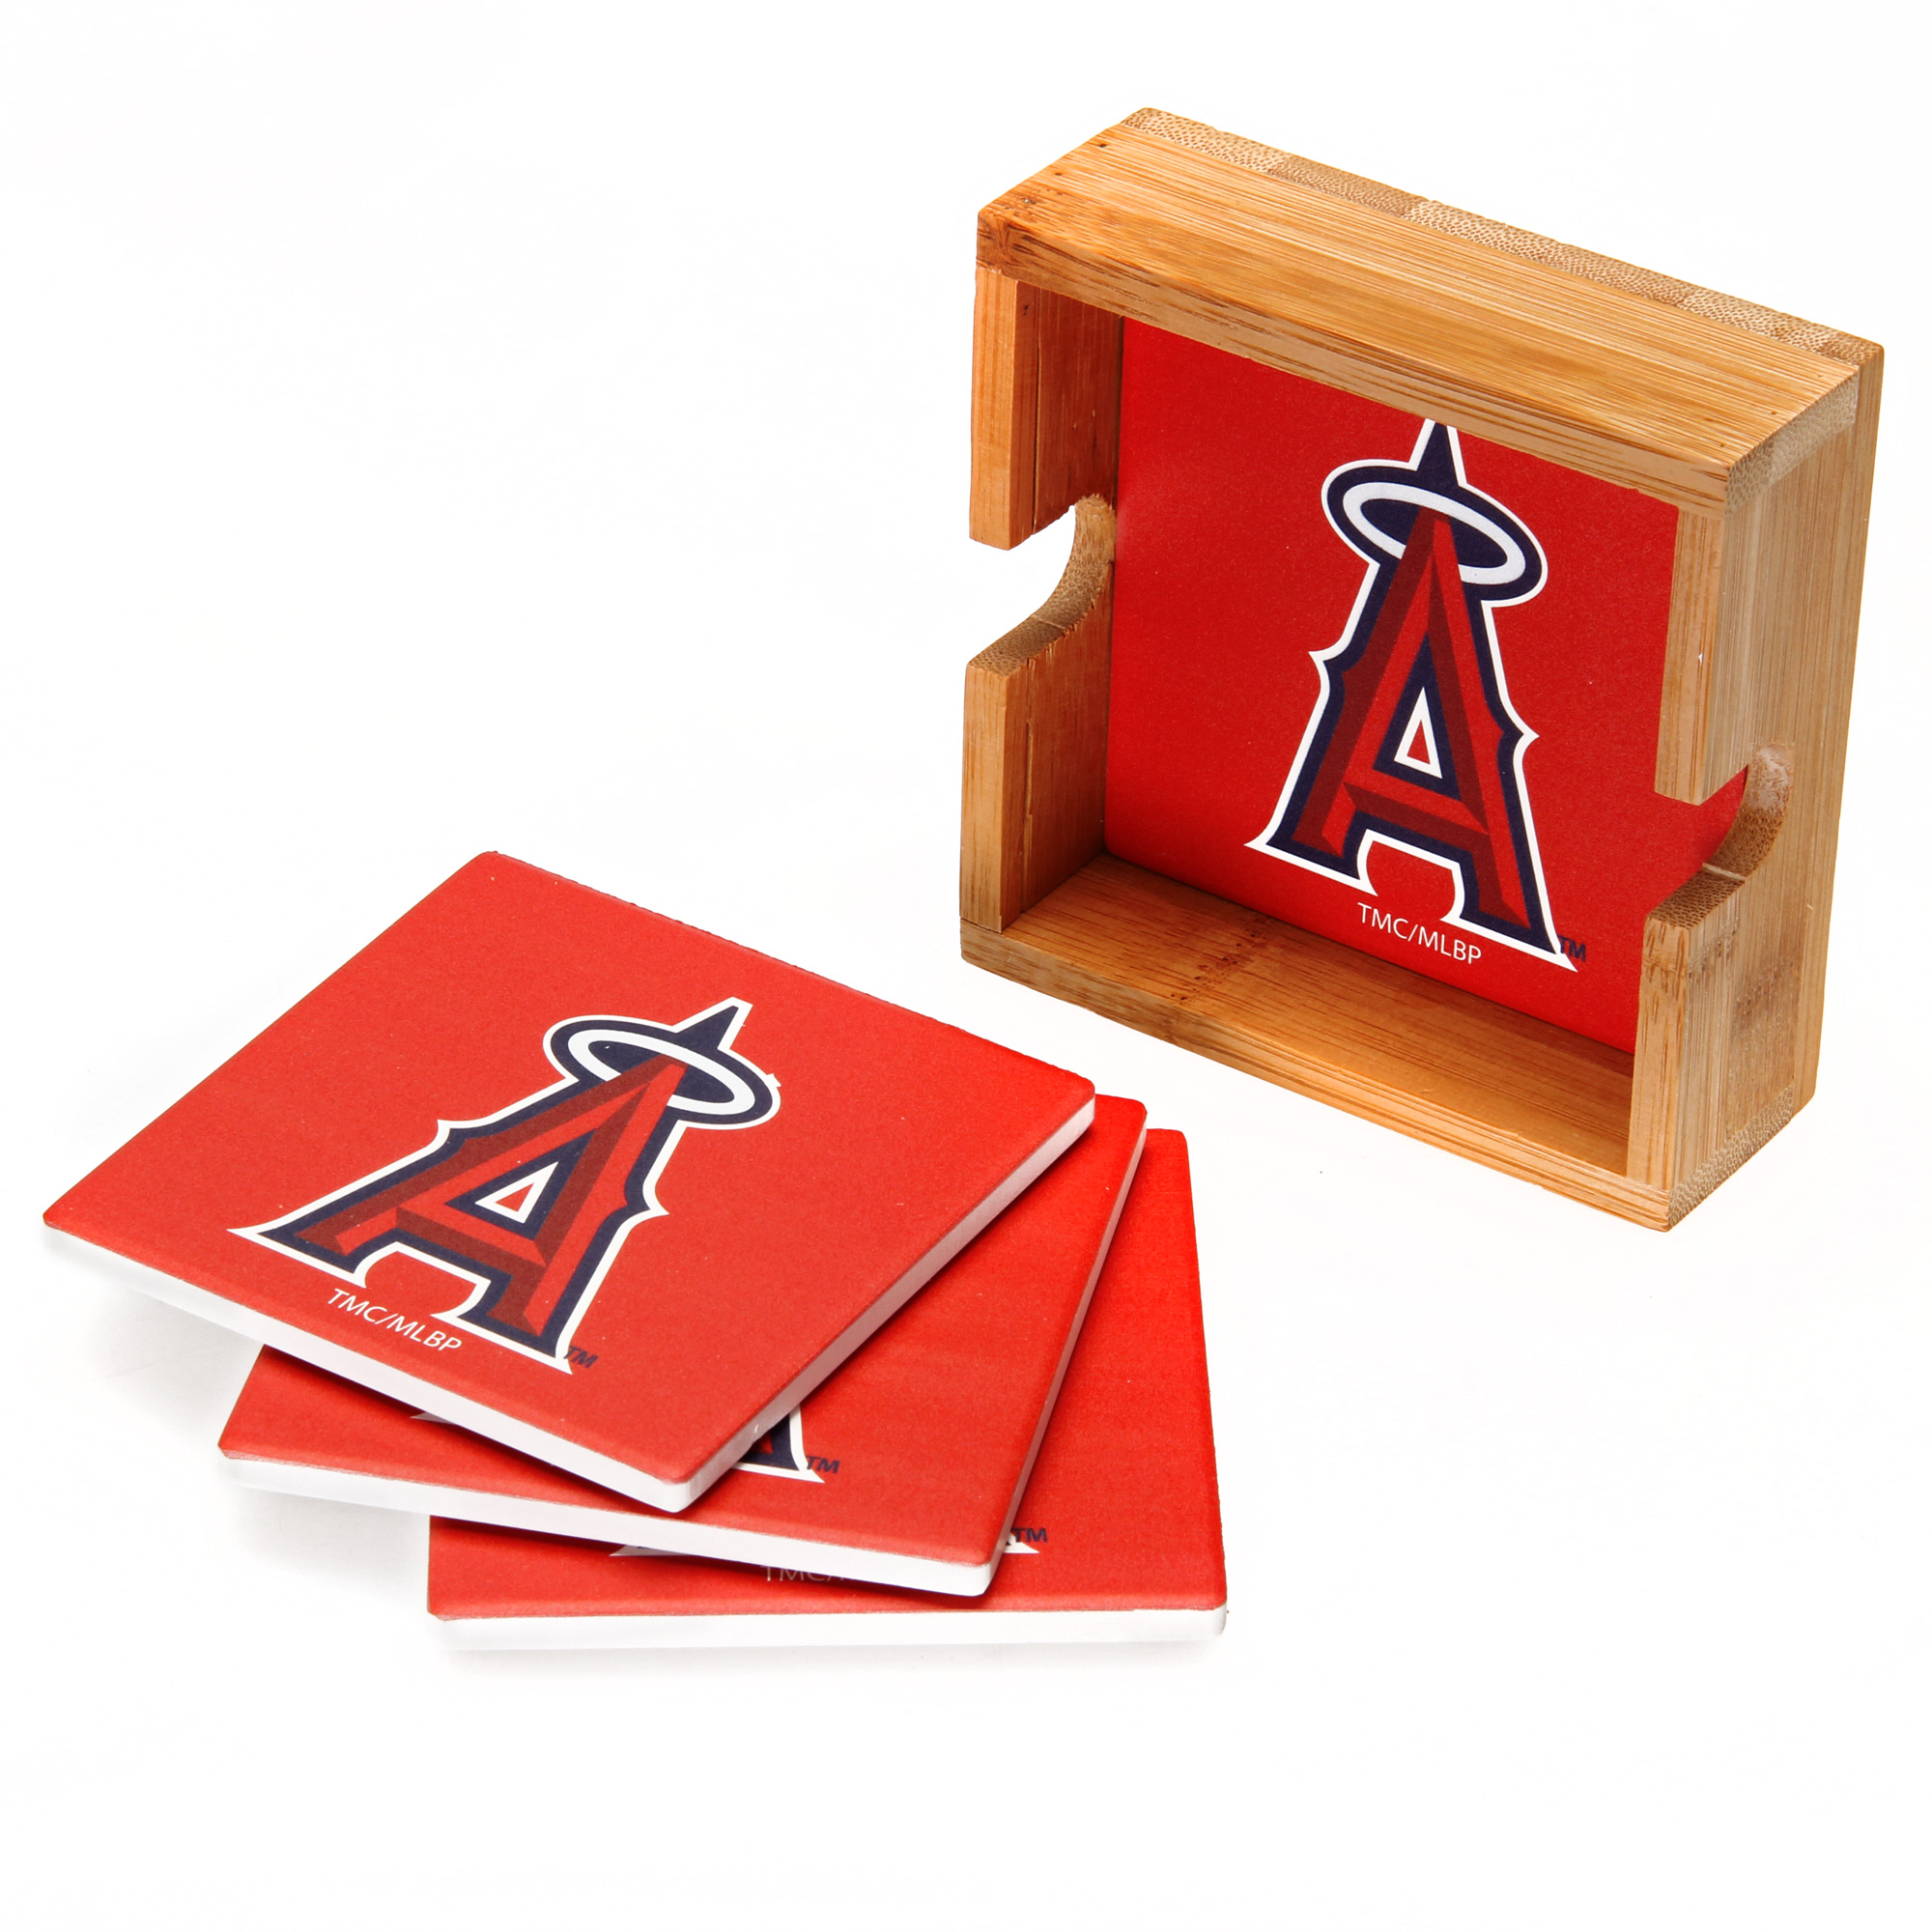 Los Angeles Angels 4-Pack Square Coaster Set with Caddy - No Size